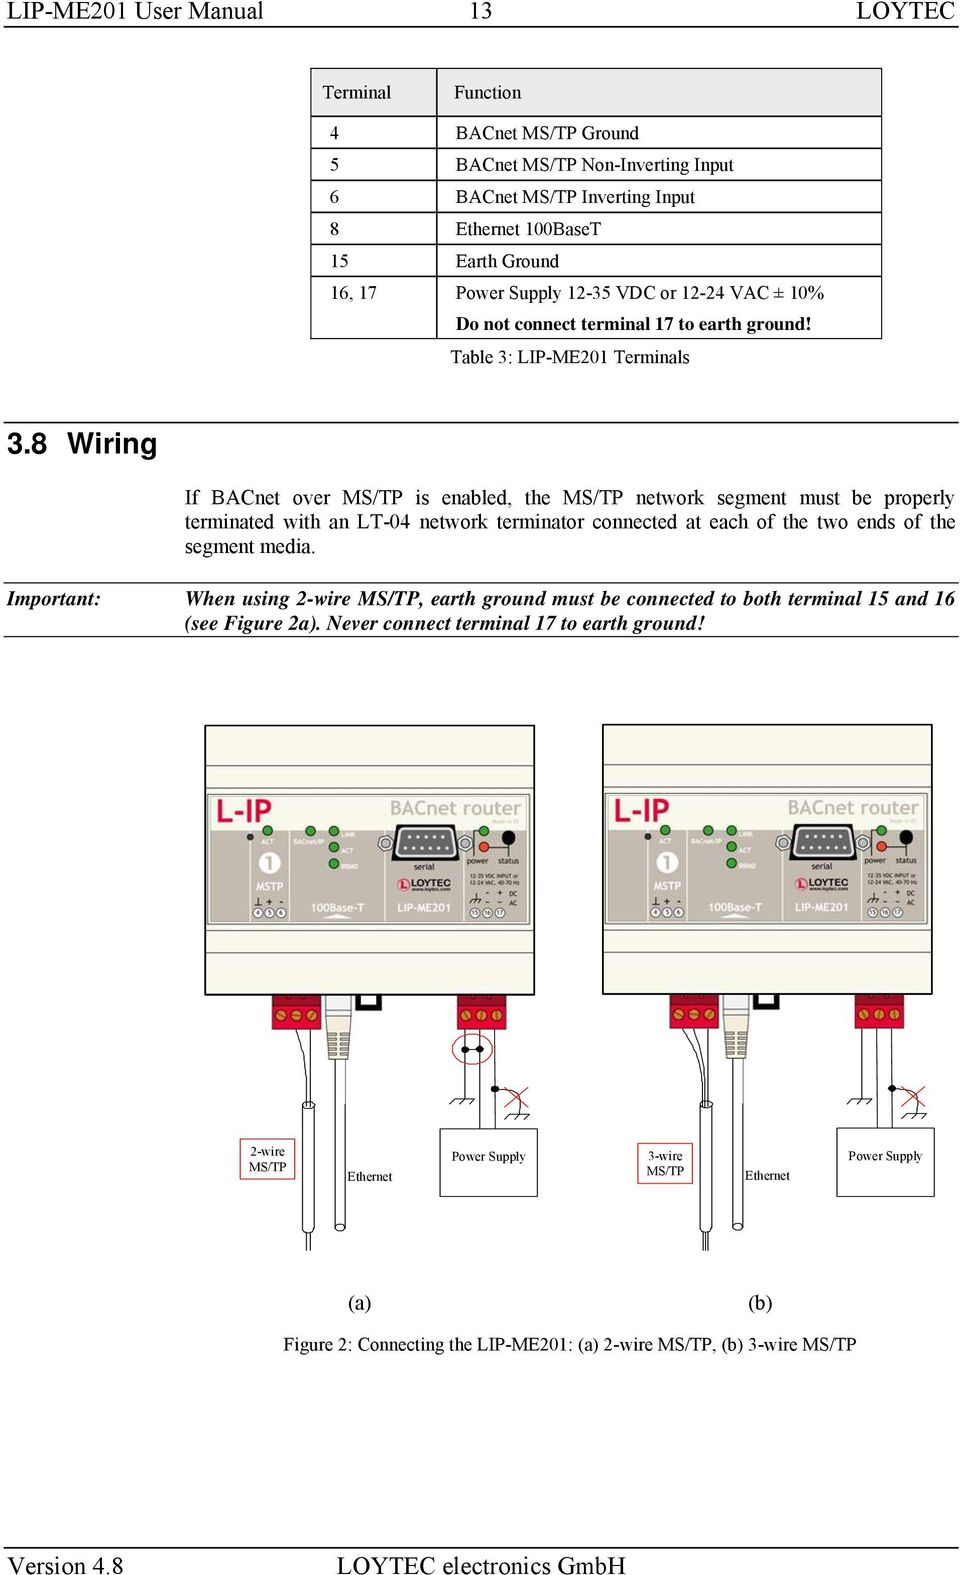 3 Wire Bacnet Wiring Diagram Schematic Diagrams Lip Me201 User Manual L Ip Router Loytec Electronics Gmbh Smtp